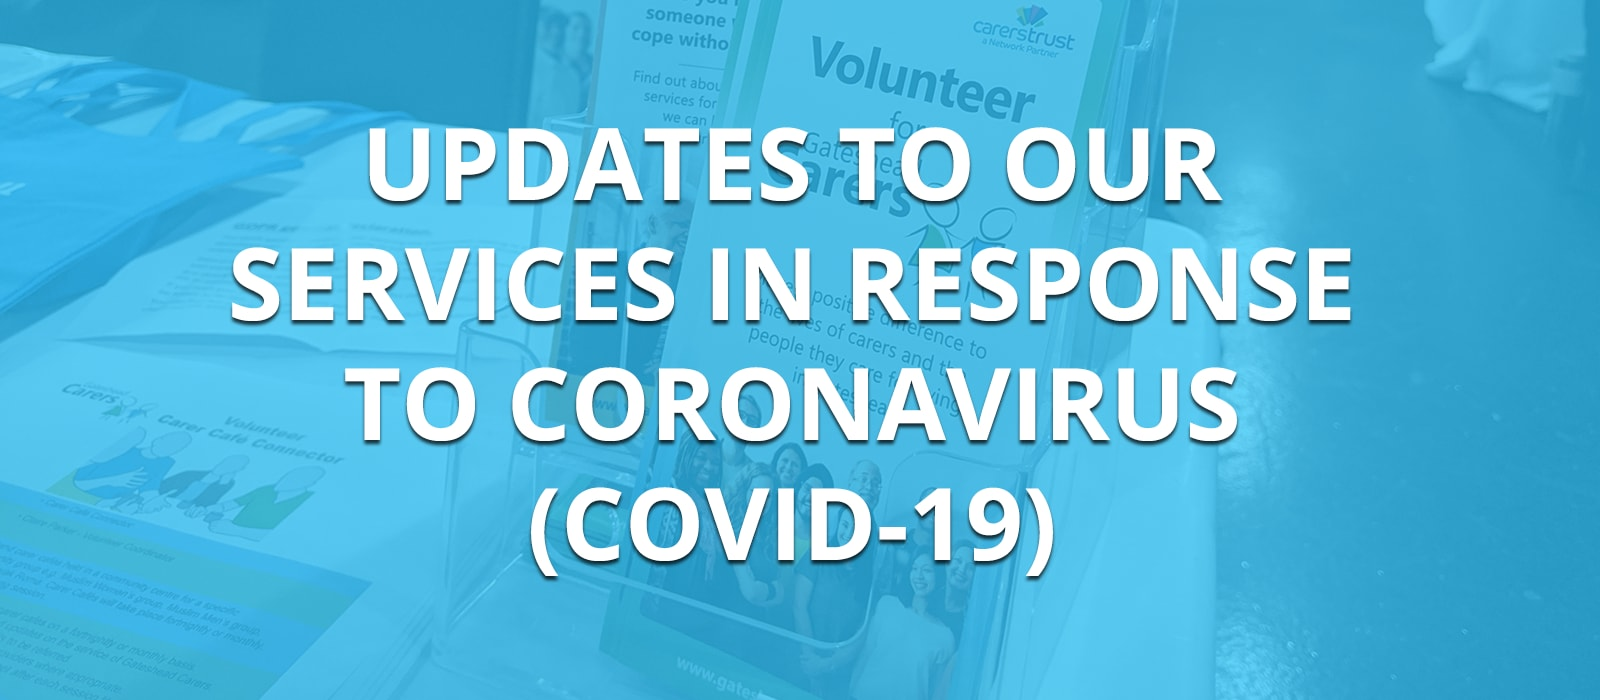 An update to our services in response to Coronavirus (COVID-19)